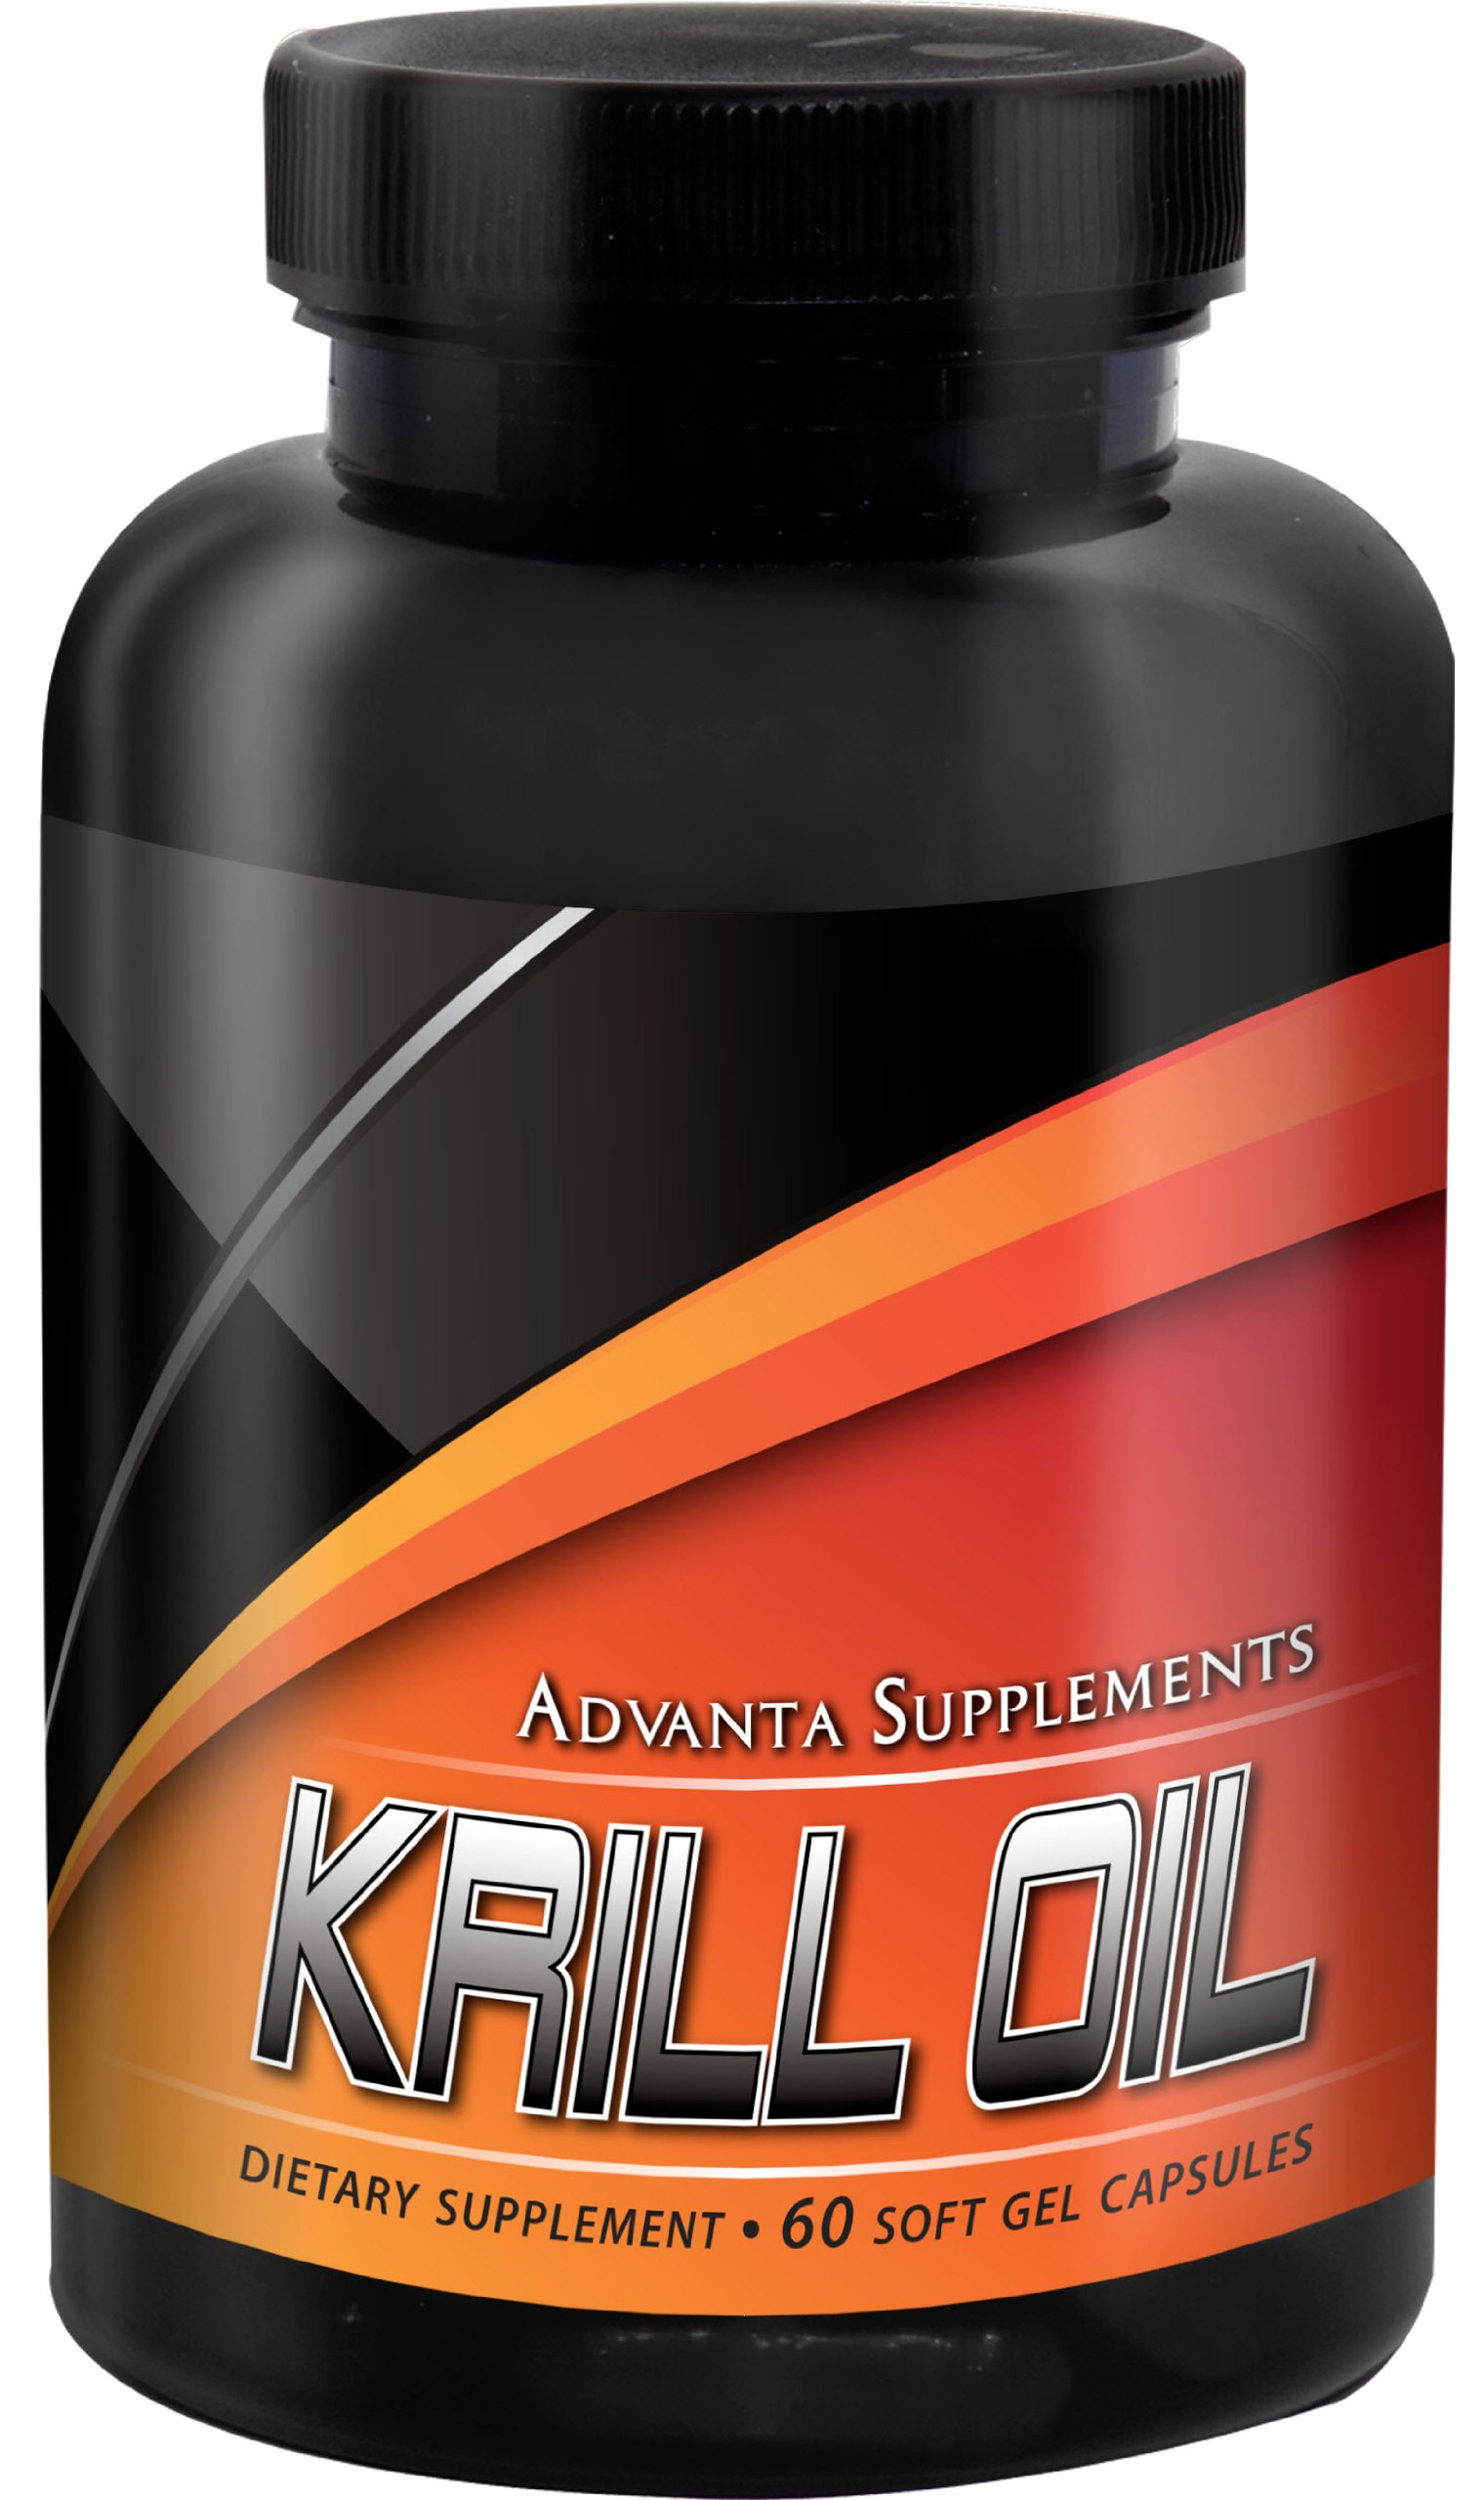 Krill Oil Capsules by Advanta Supplements | Control Cholesterol Level, Support Heart/Brain/Joint Health And Reduce Inflammation | 500mg Of Pure Krill Oil Per Capsule, 60 Soft Gel Capsules